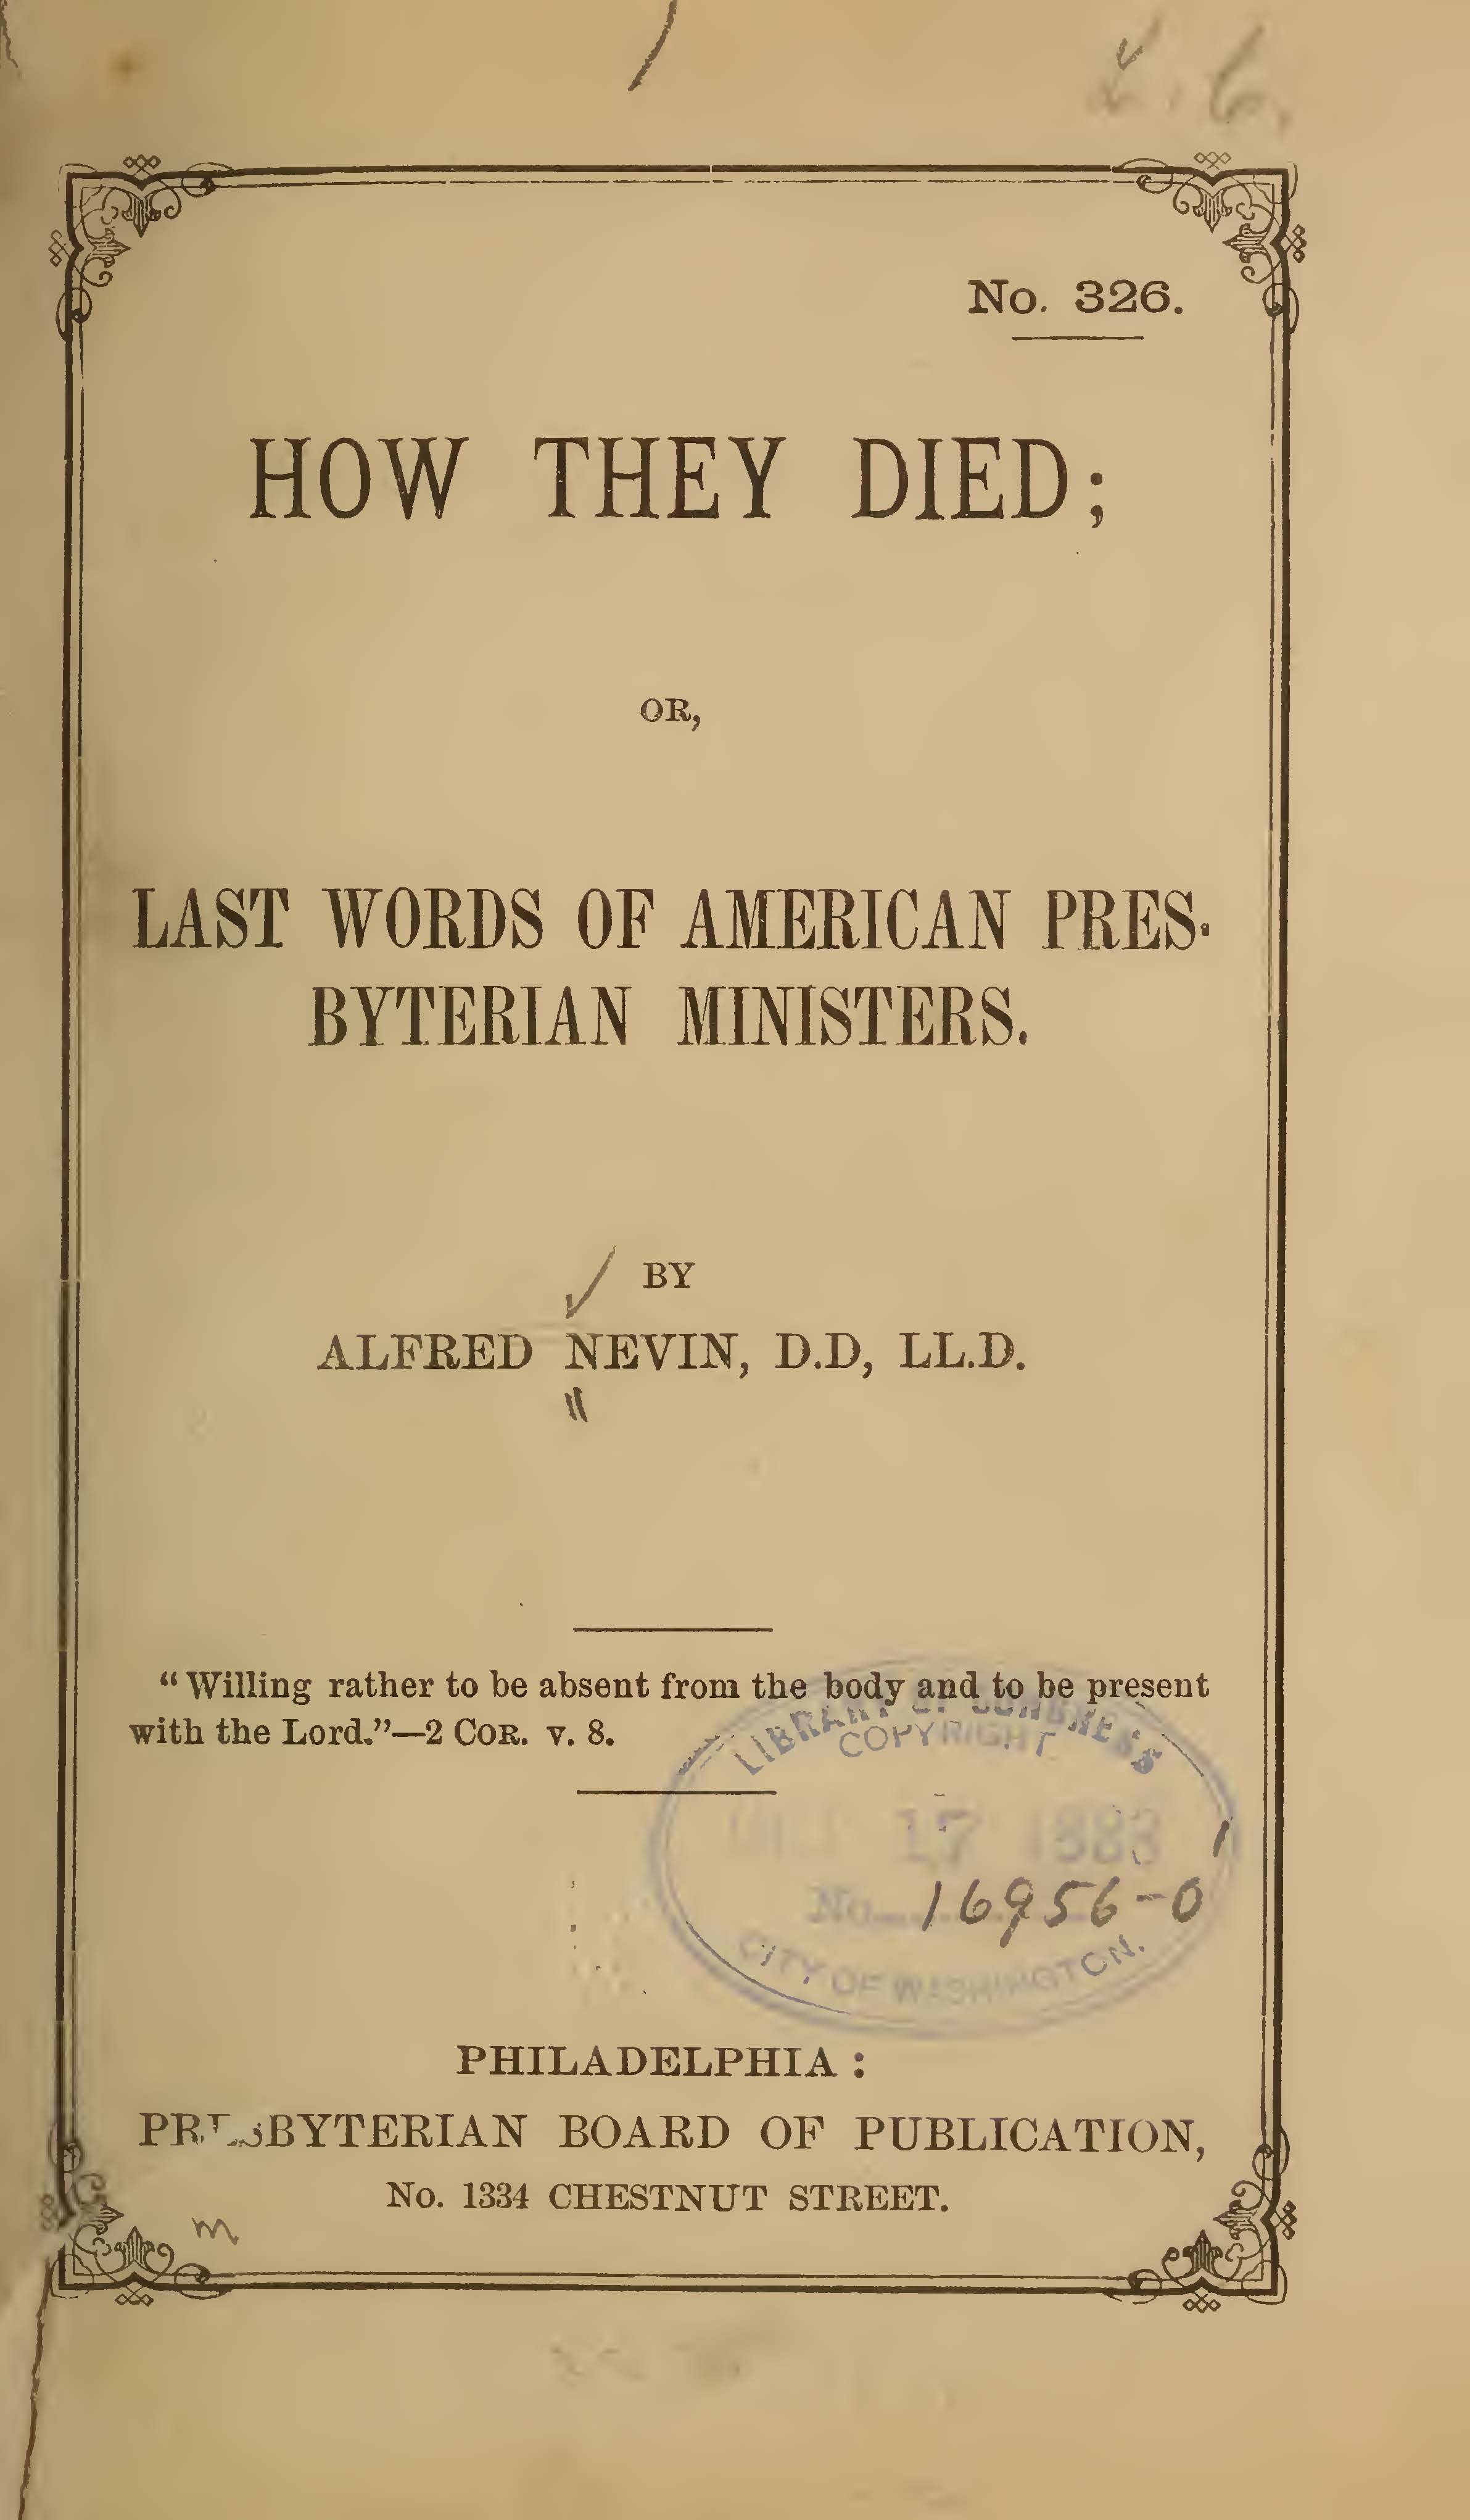 Nevin, Alfred, How They Died Title Page.jpg